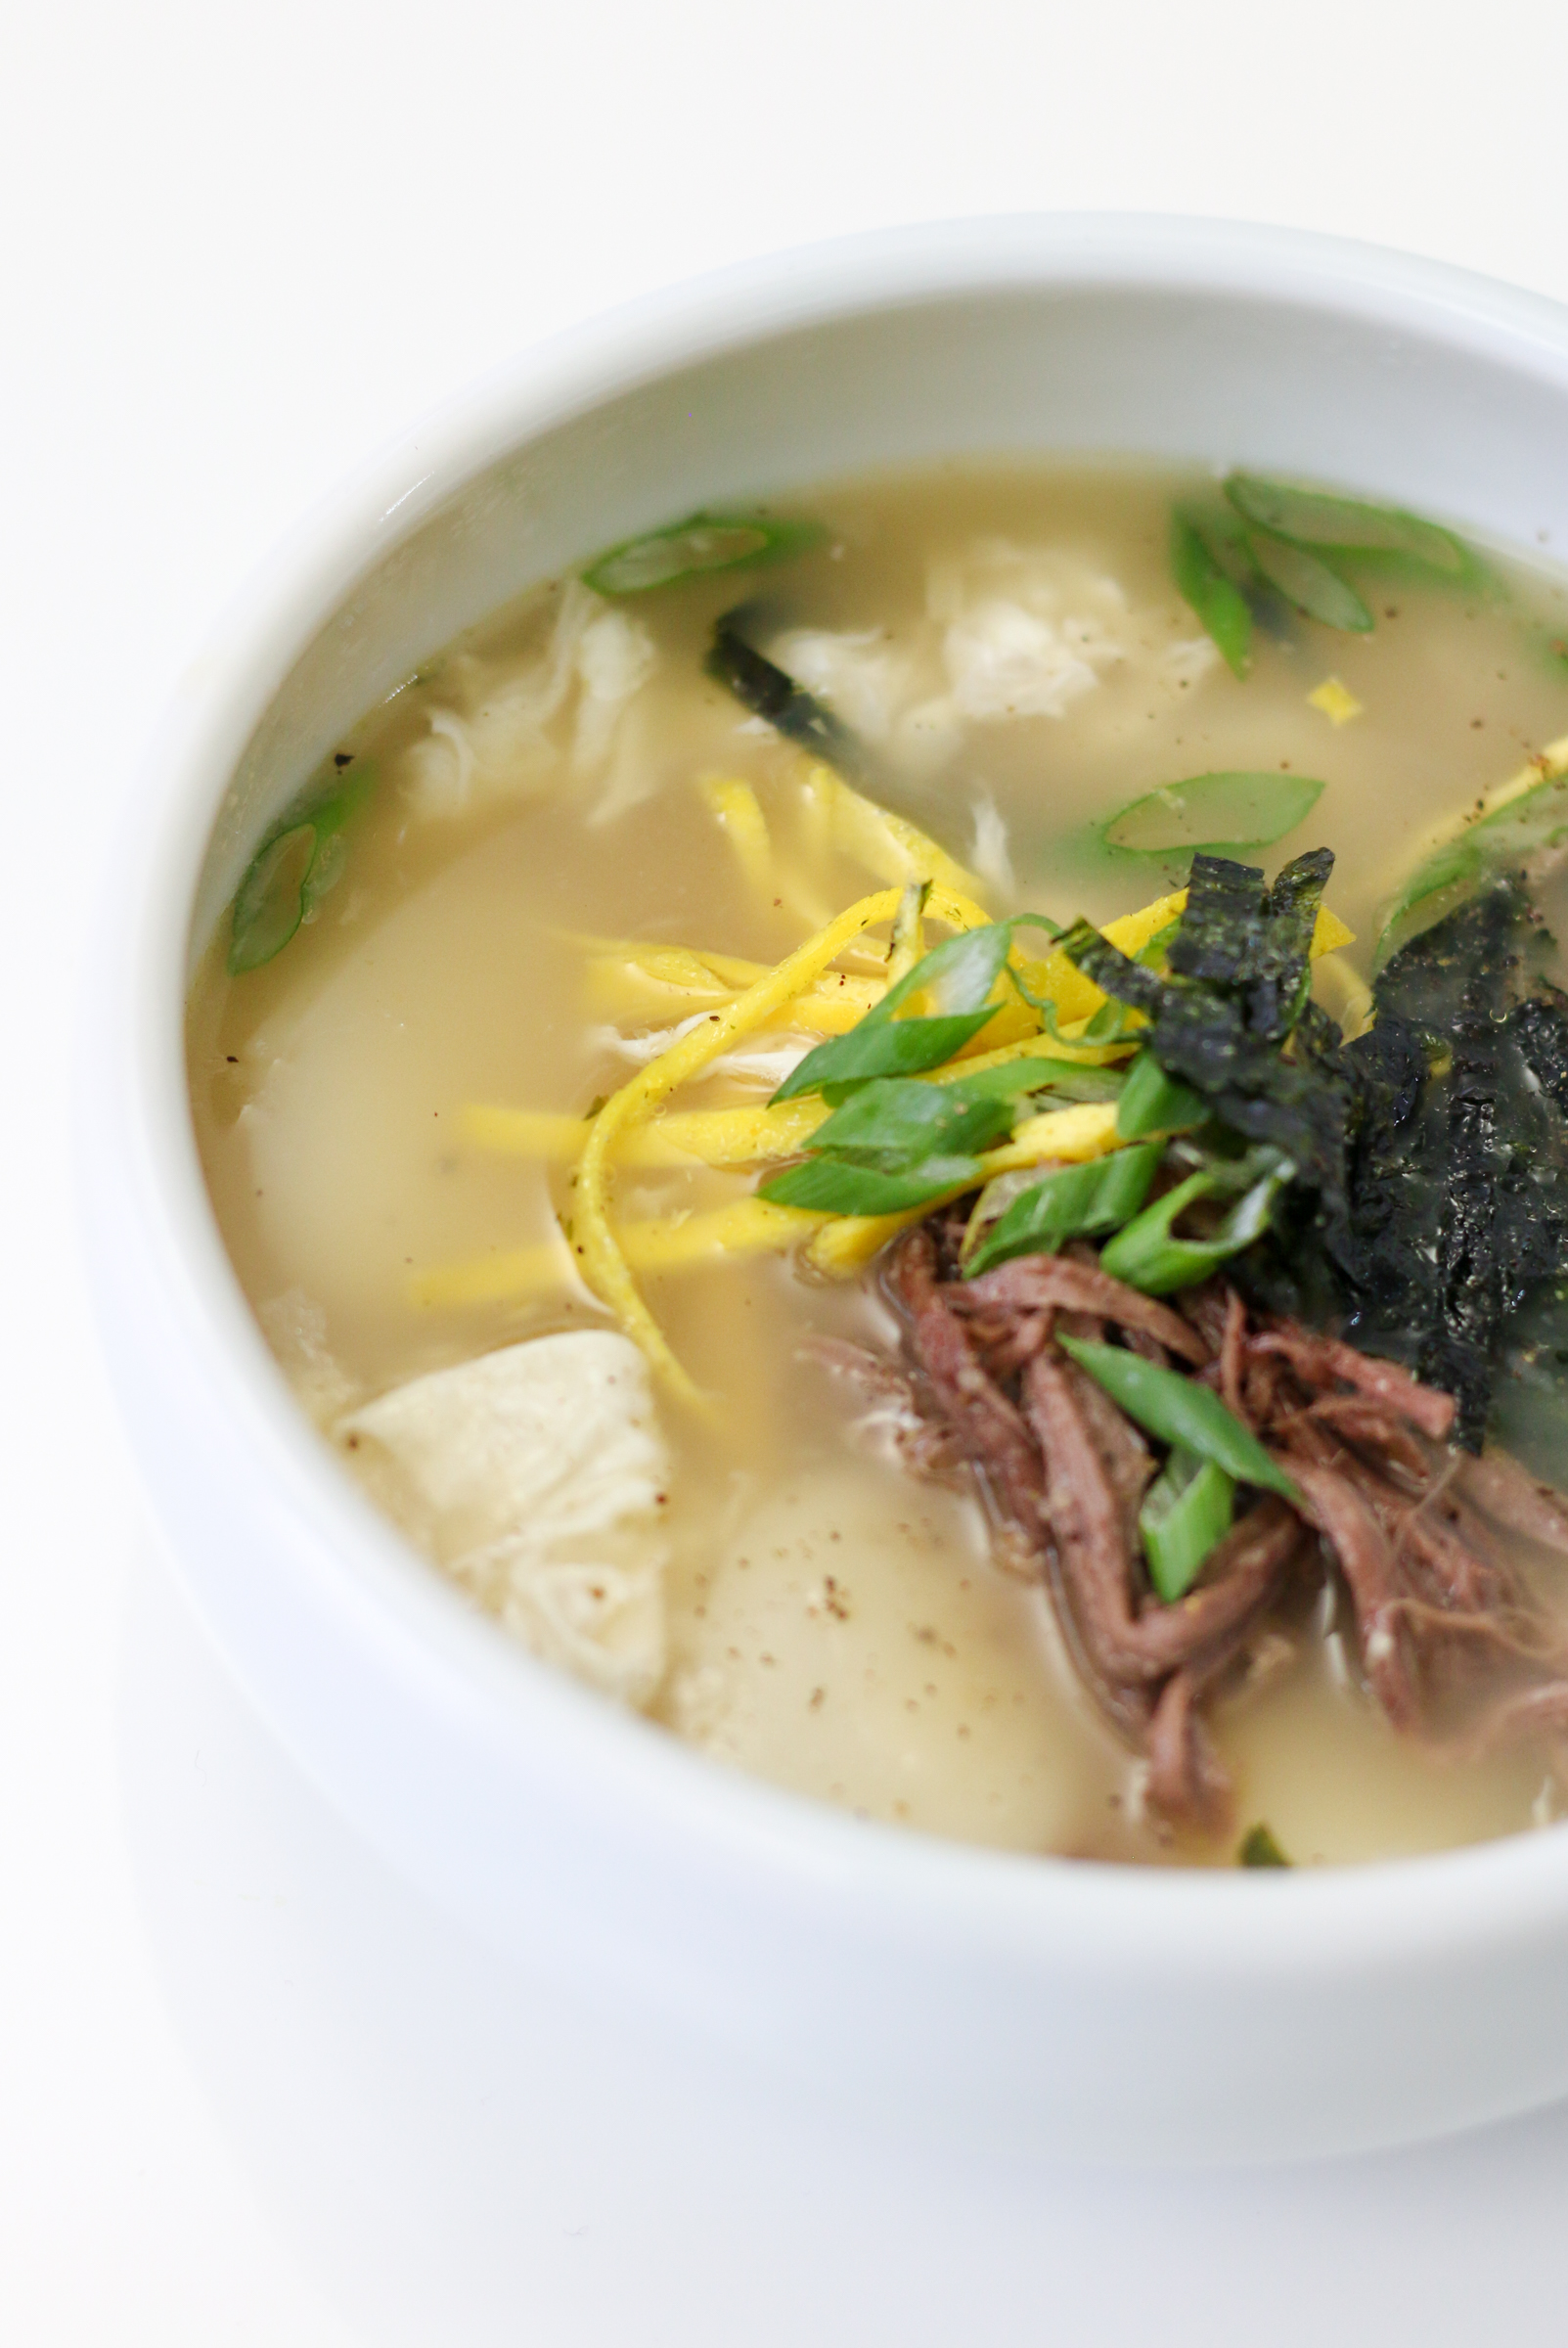 Korean rice cake dumpling soup recipe